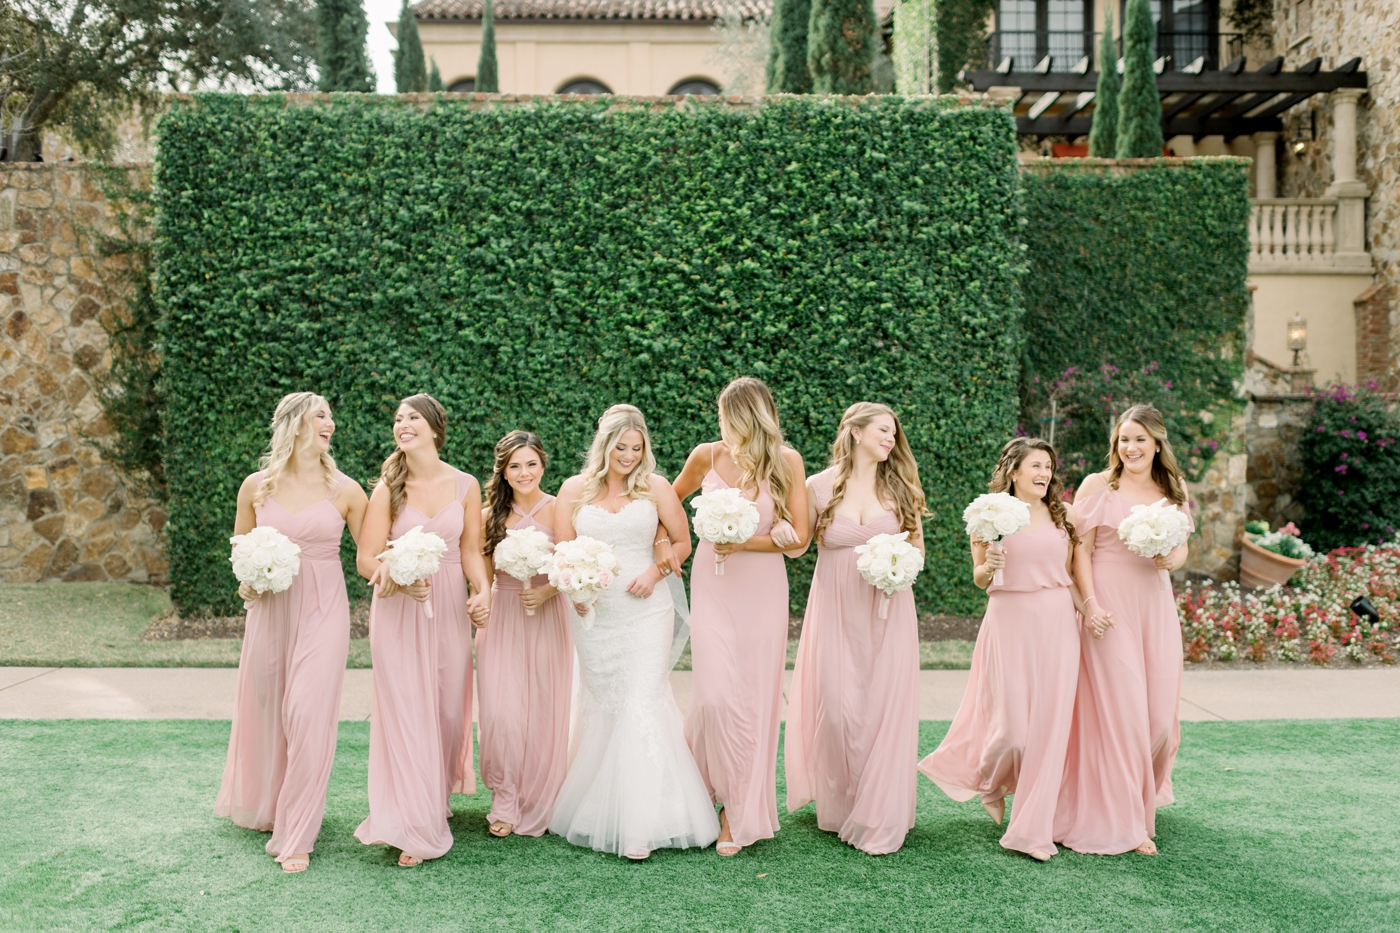 why do we have bridesmaids?